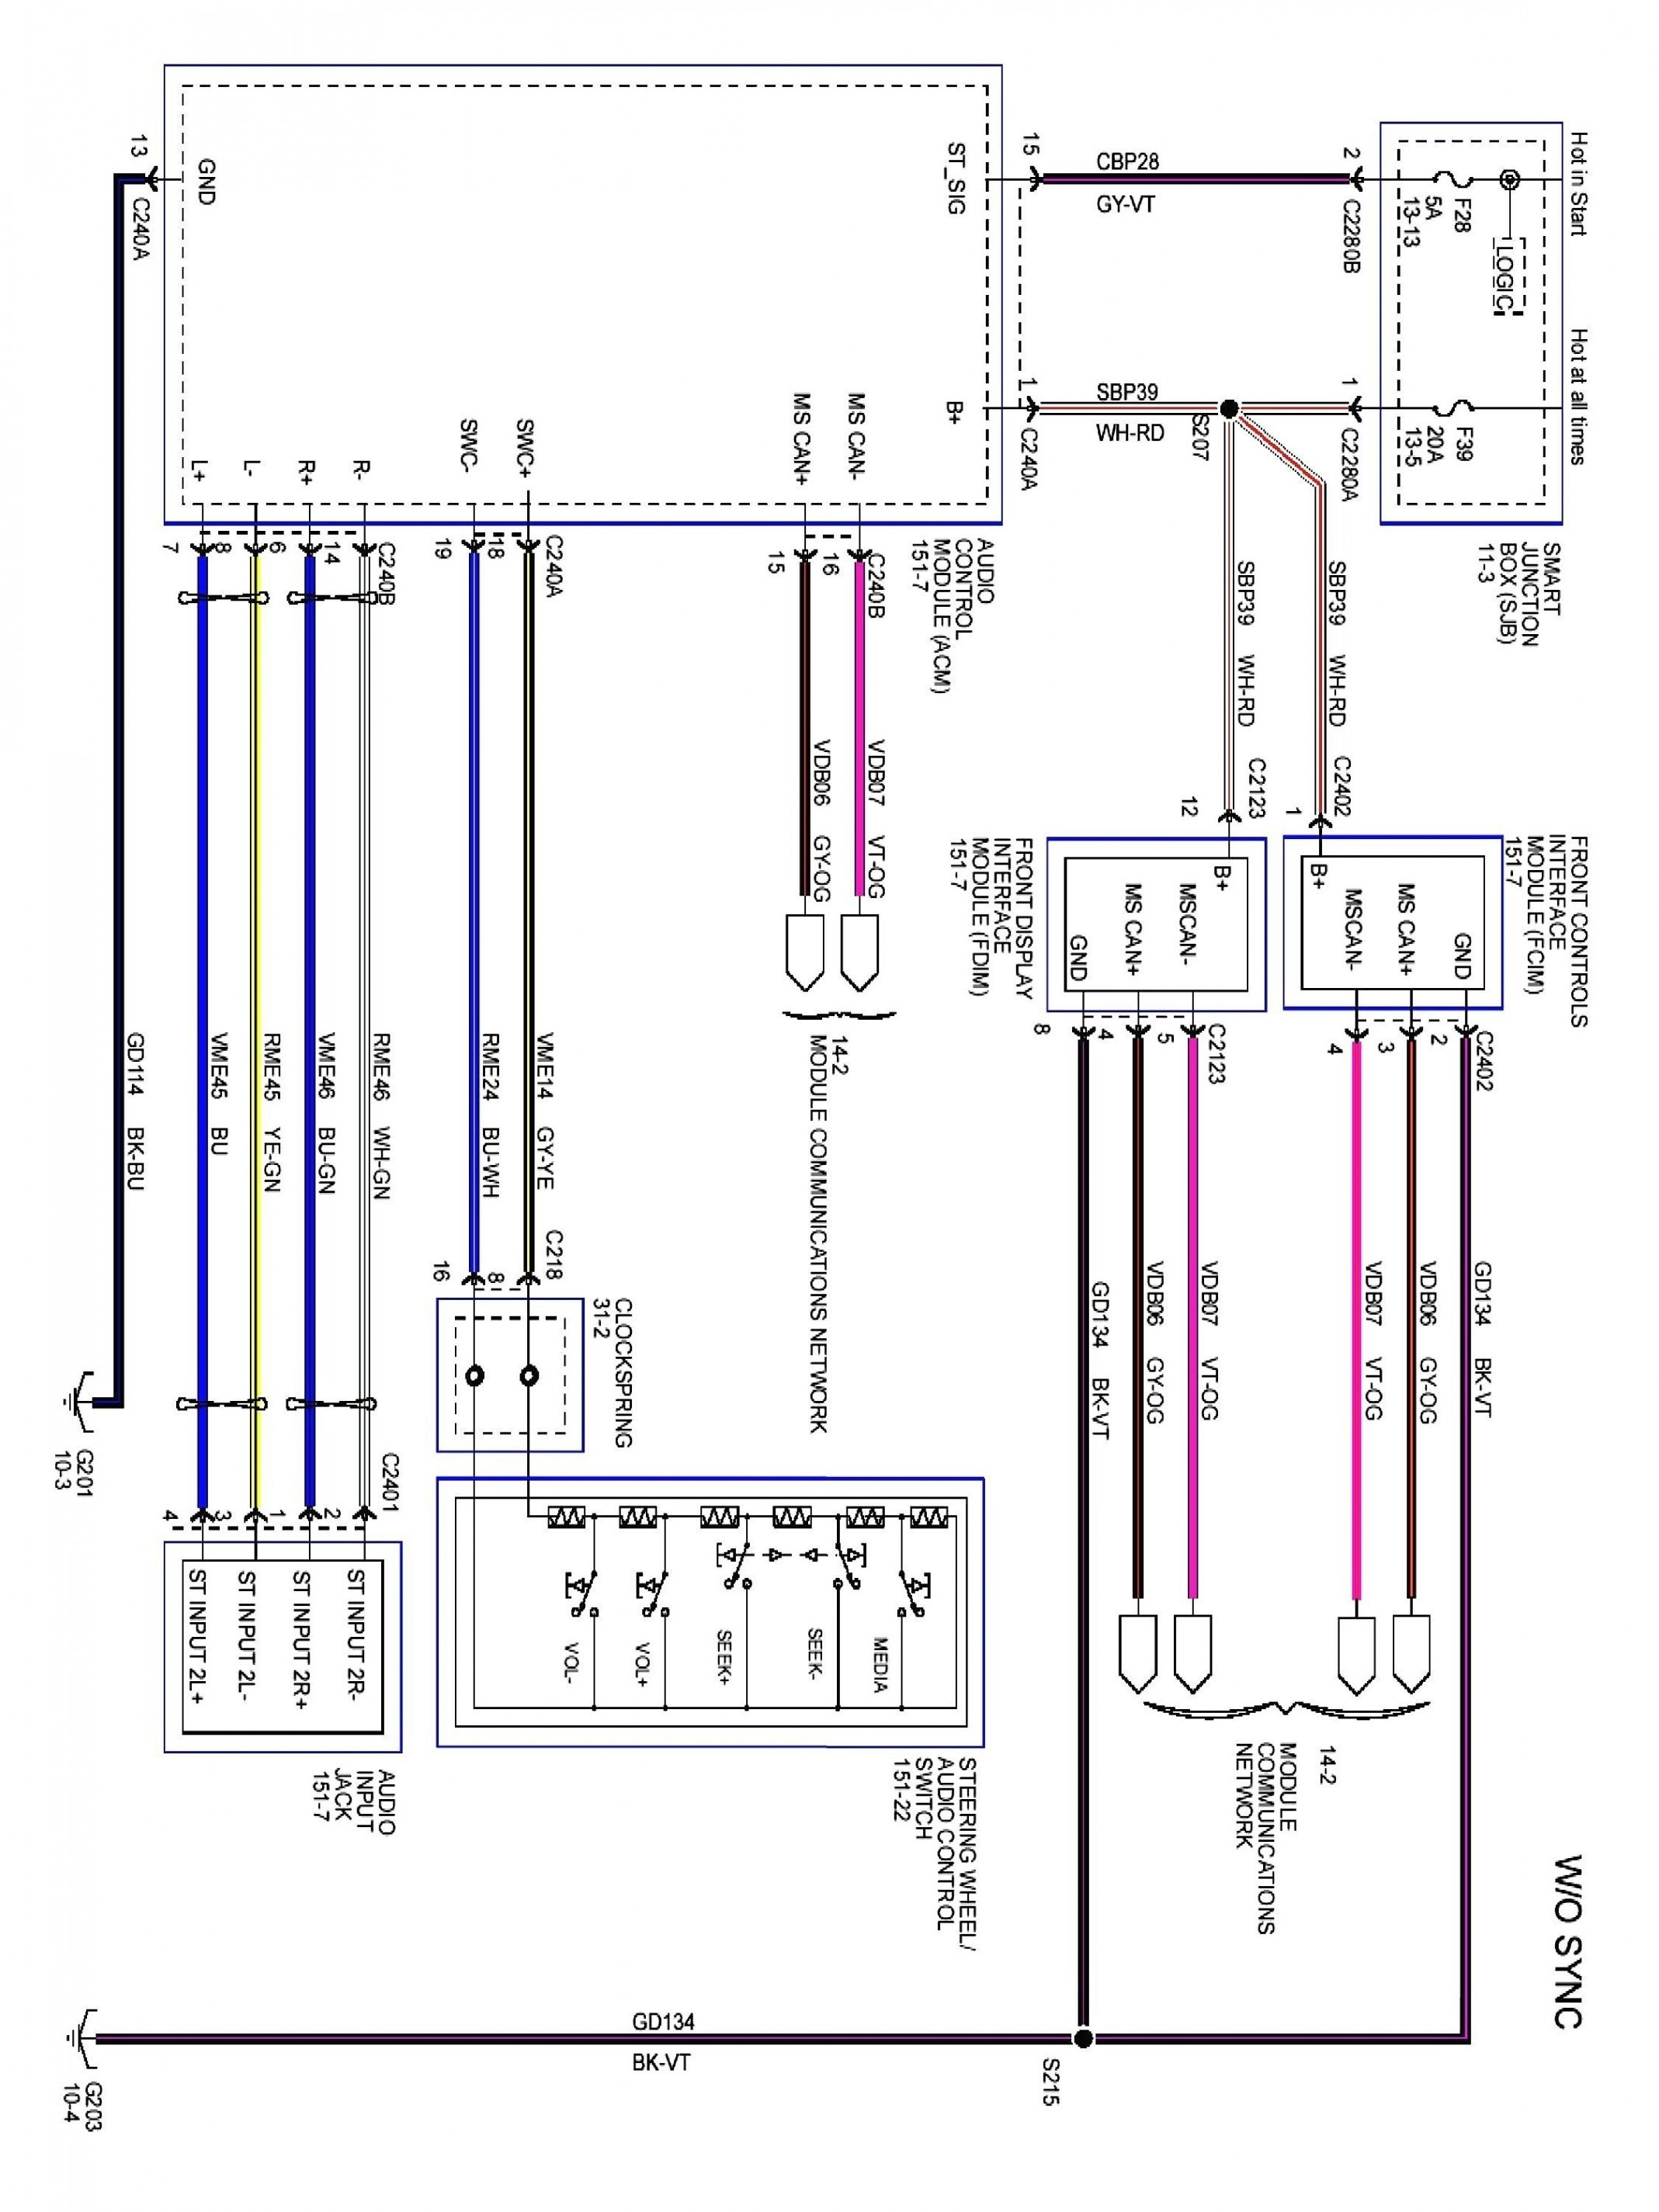 Hybrid Engine Diagram 2004 Bmw X3 Engine Diagram Worksheet and Wiring Diagram • Of Hybrid Engine Diagram